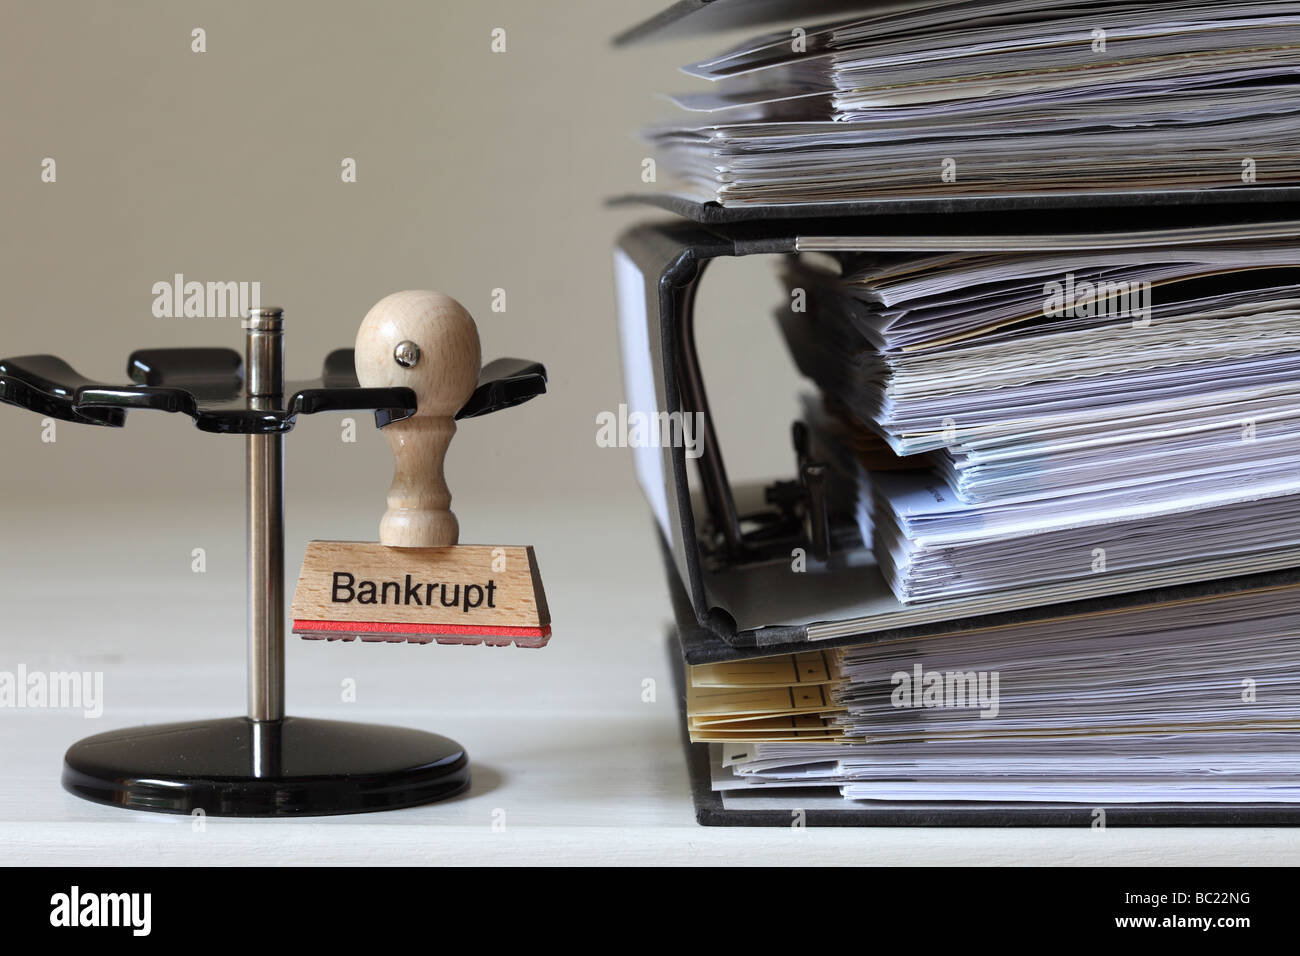 Stamp with inscription Bankrupt next to a pile of files - Stock Image